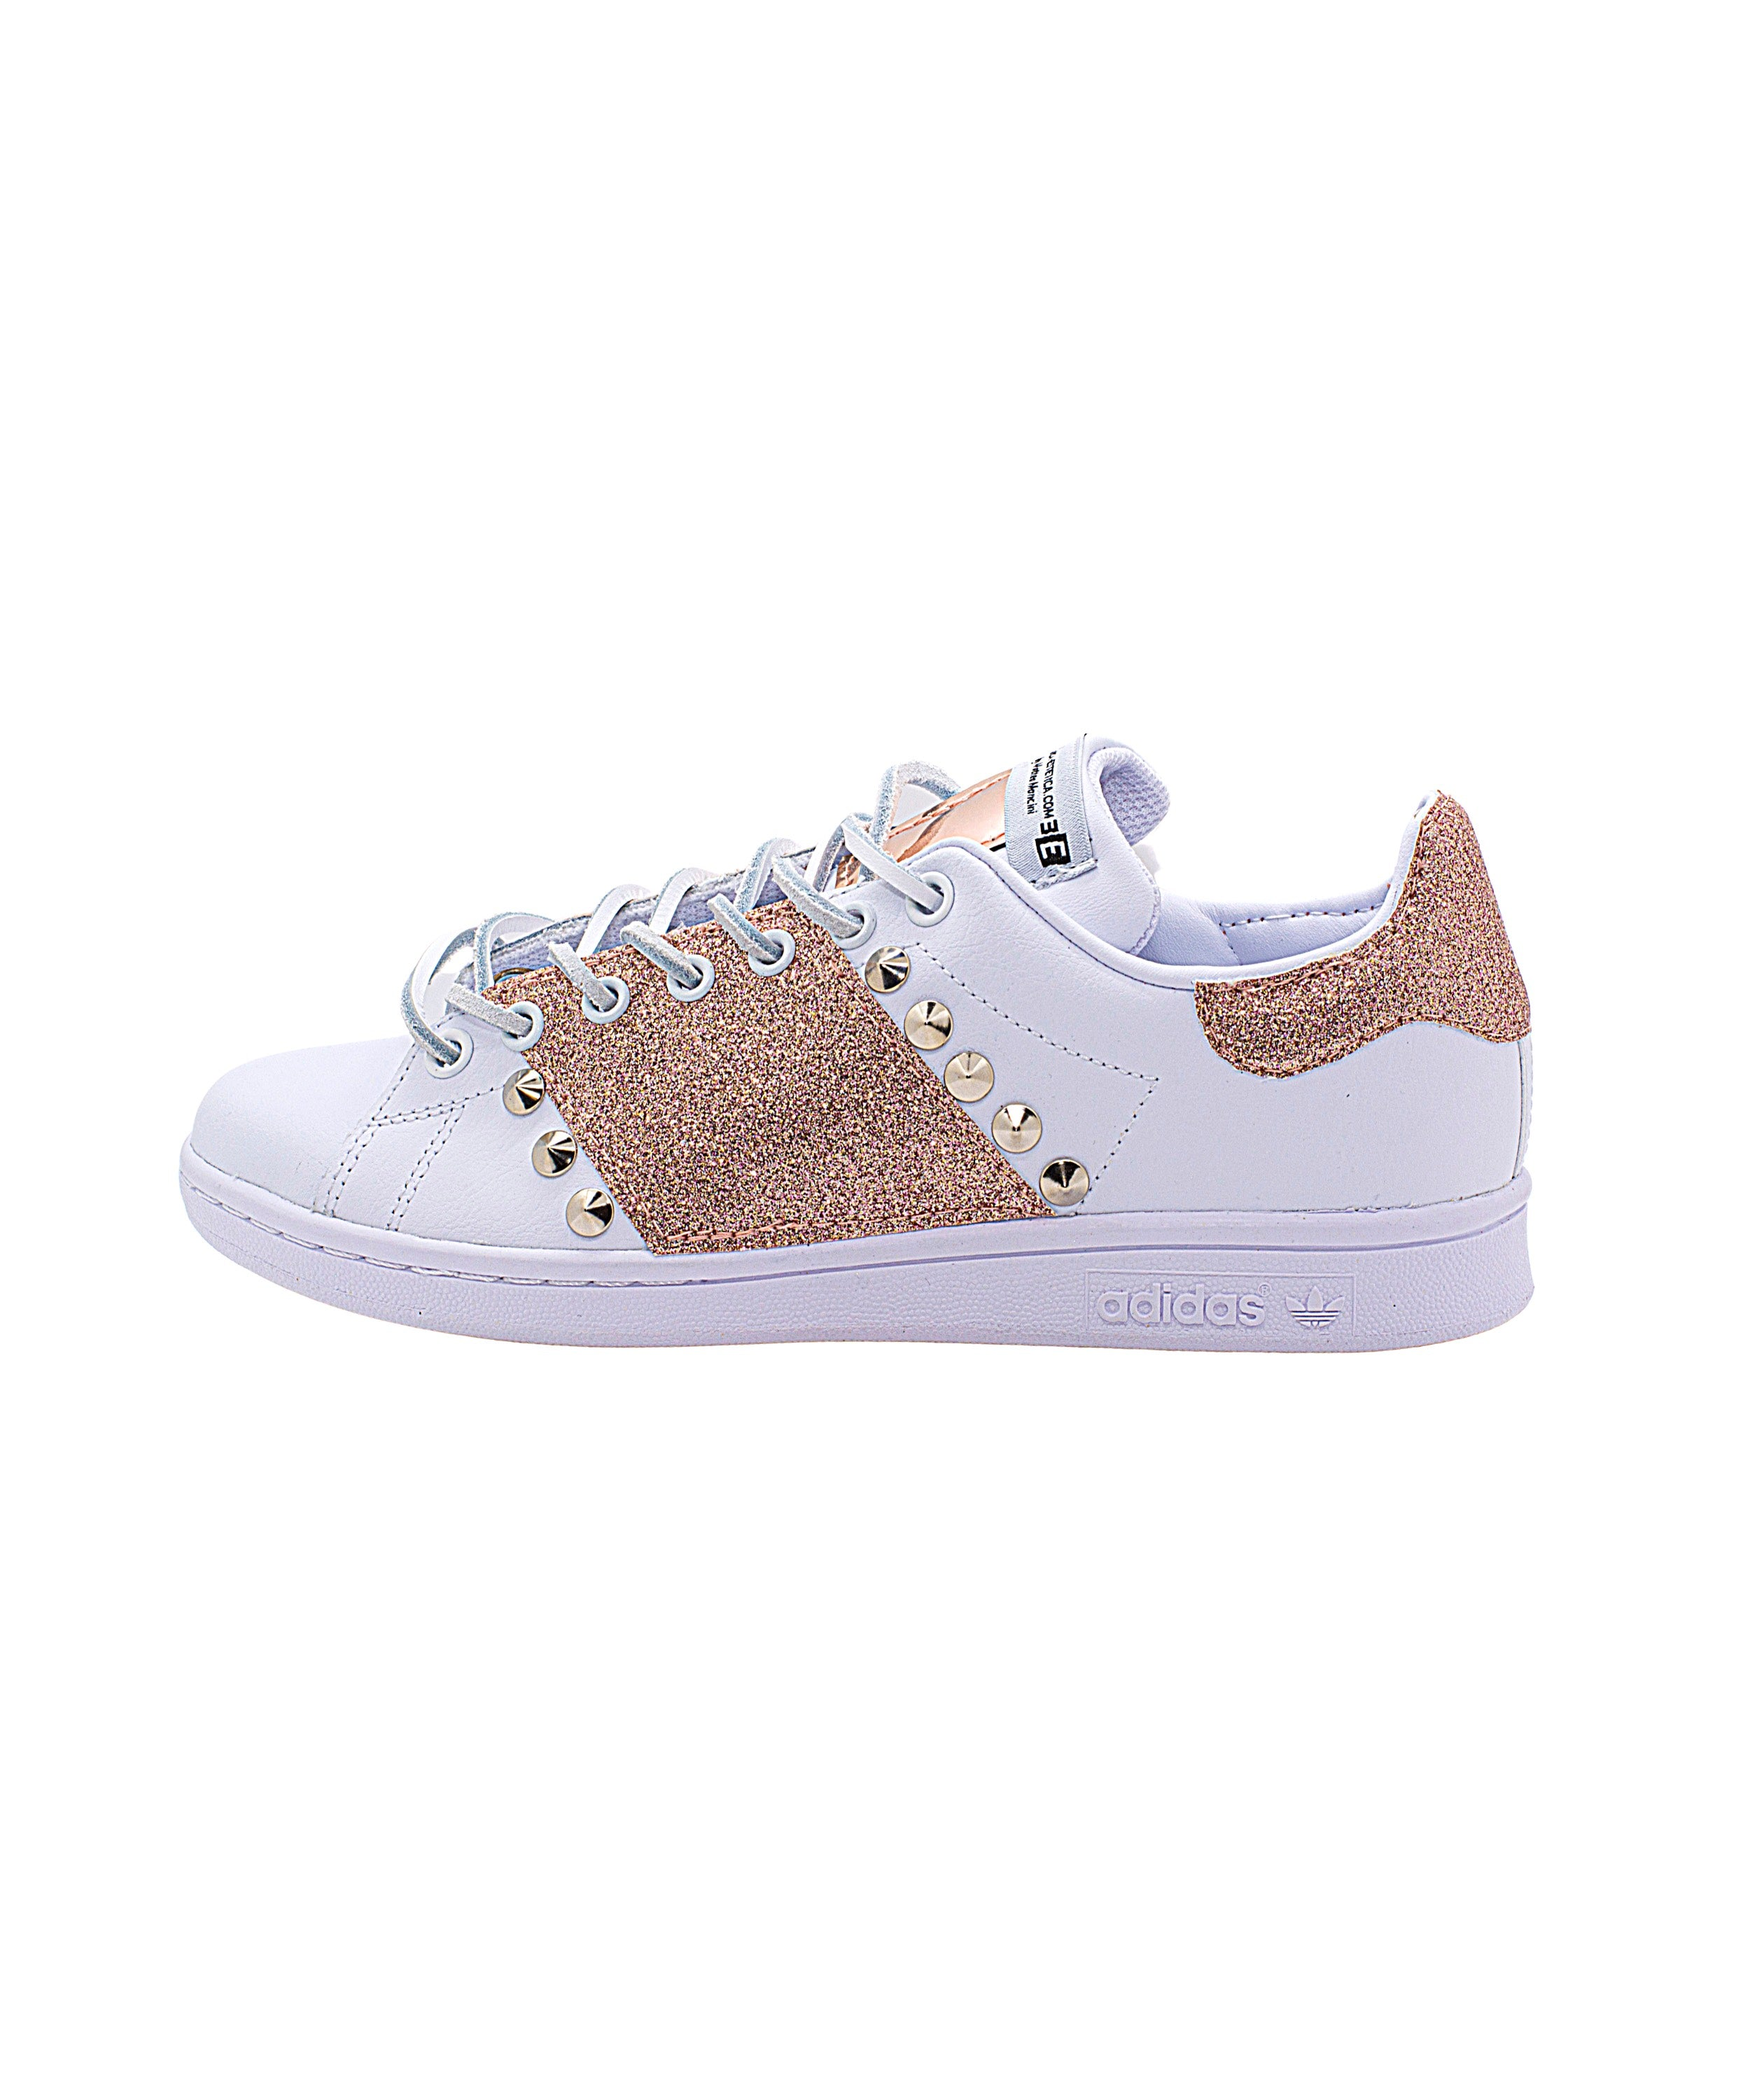 EticaEstetica Custom Sneakers Stan Smith Donna Bianco Glitter Borchie